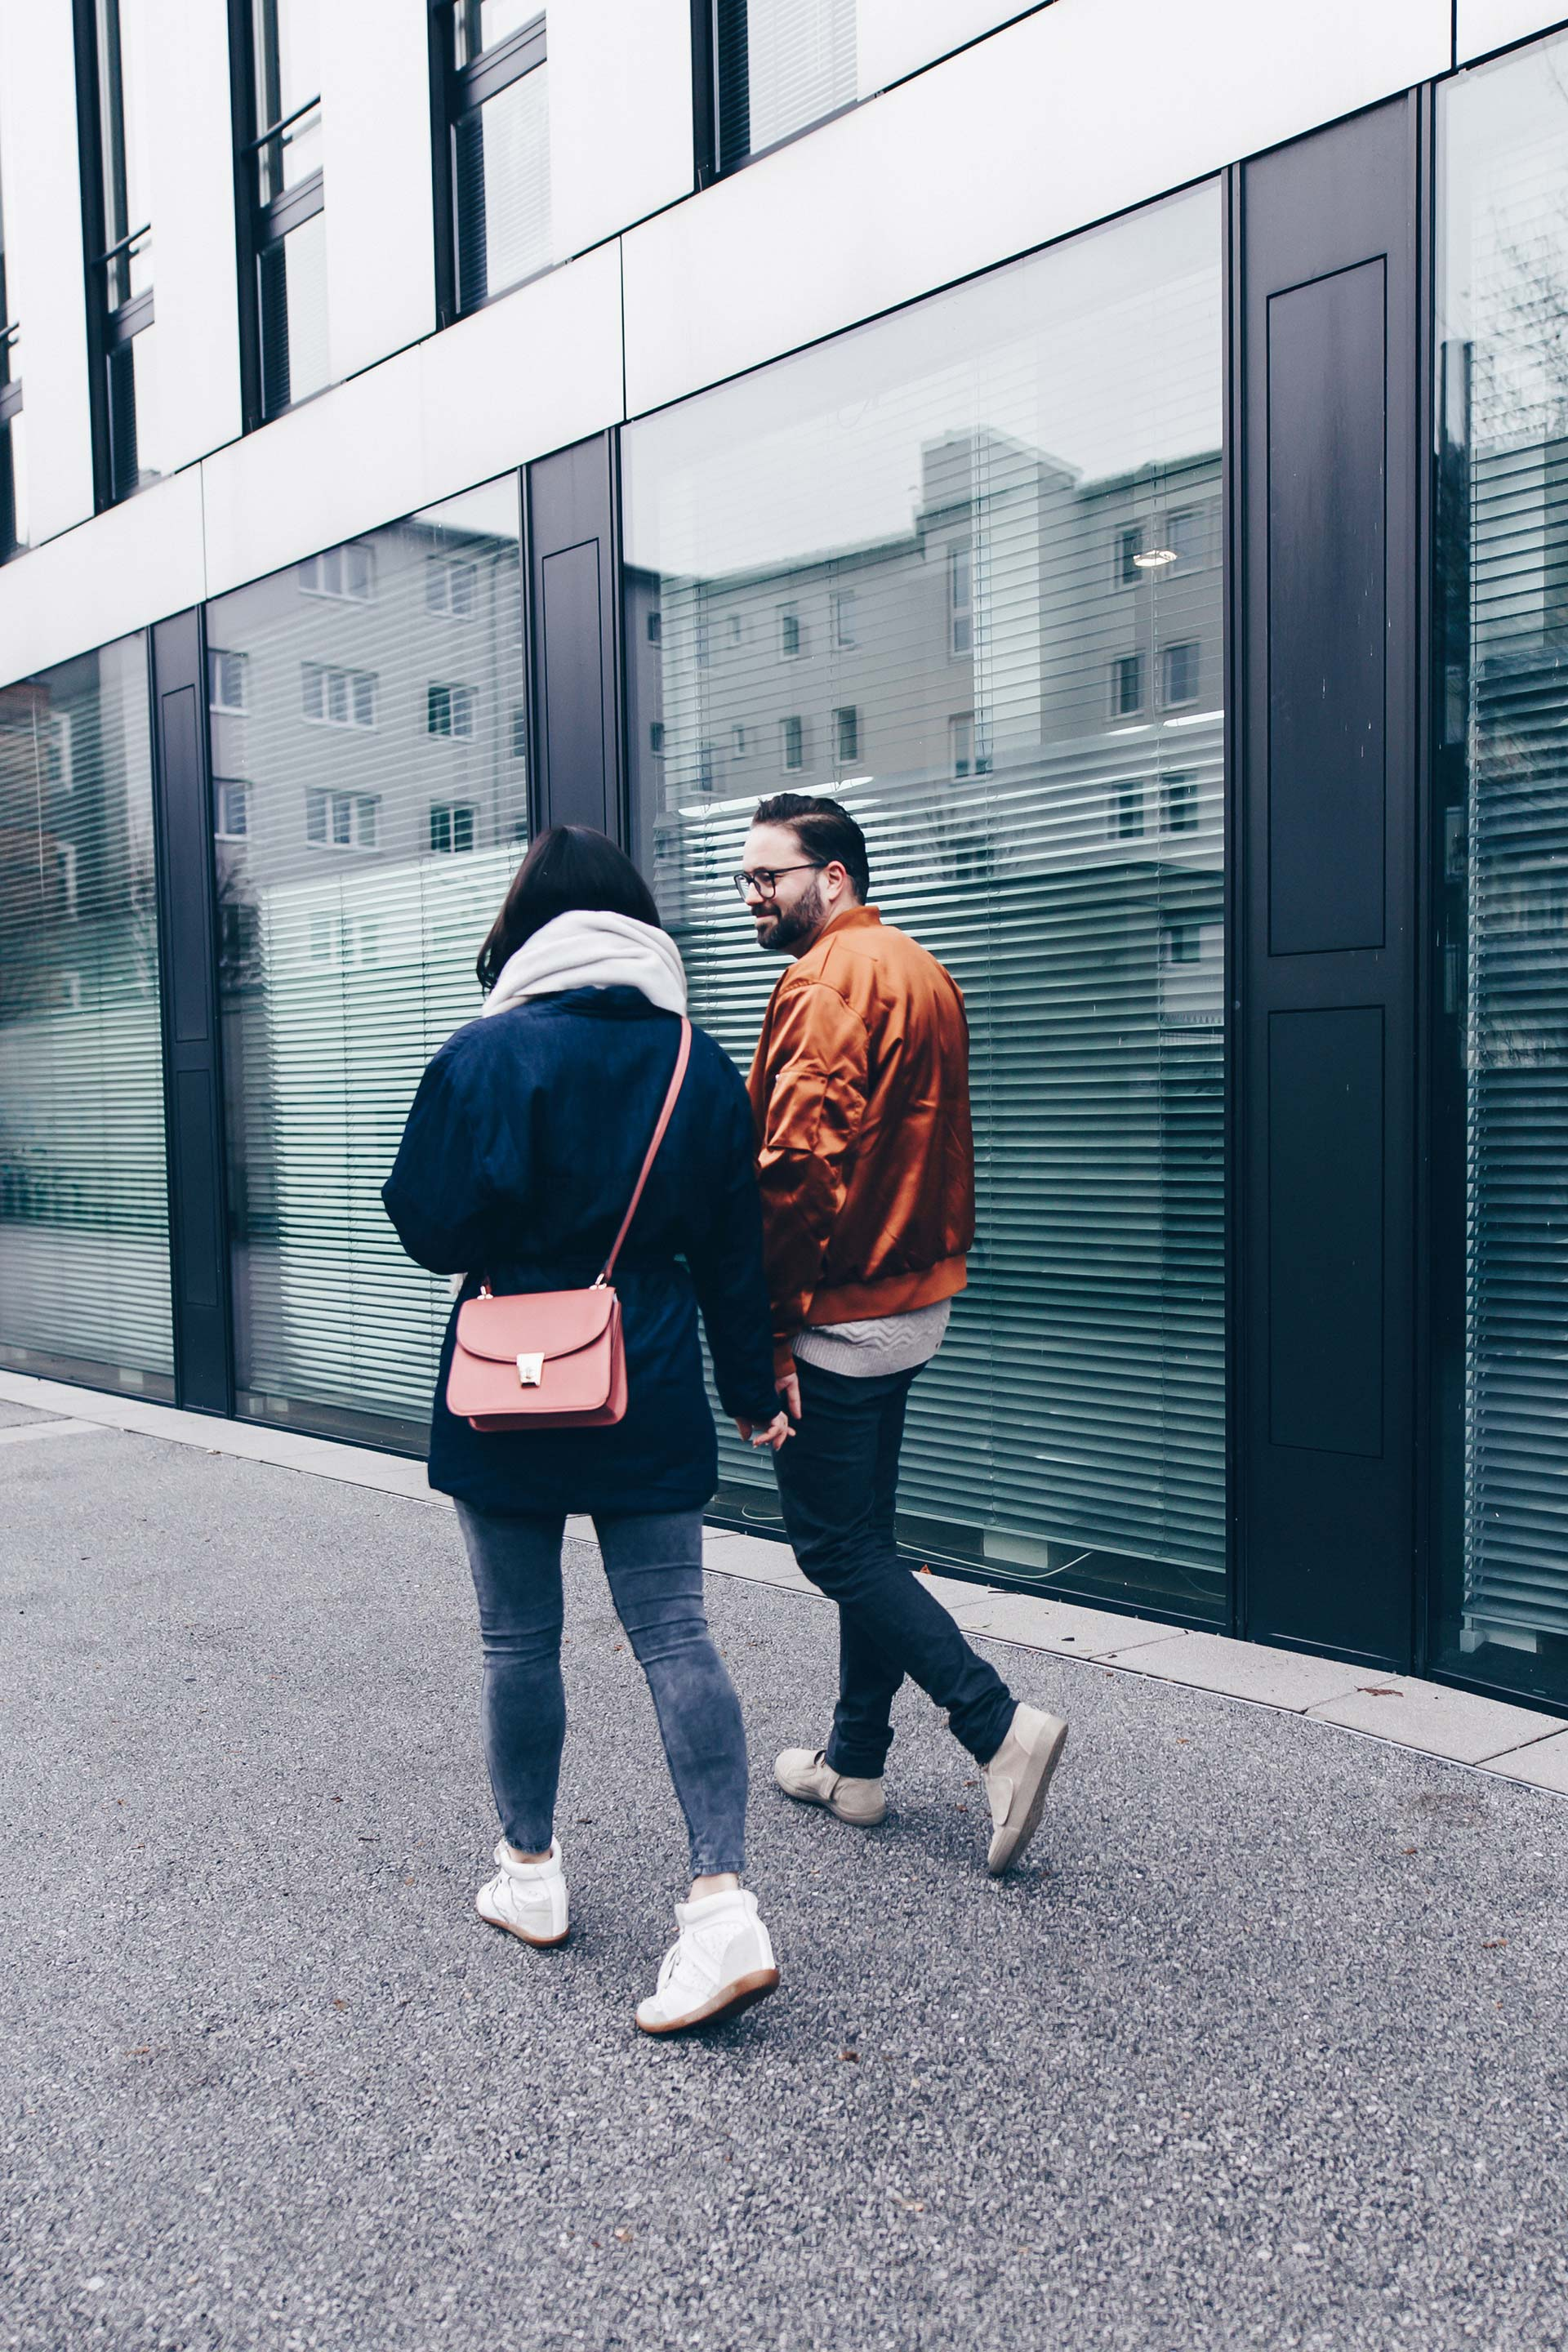 Basic Casual Paar Outfit, Partnerlook, Pärchen Outfit, Casual Chic Style für Damen und Herren, Sneaker Wedges, Bomberjacke, Jeans Outfit, Fashion Blog, Modeblog, Männer Blog, www.whoismocca.com